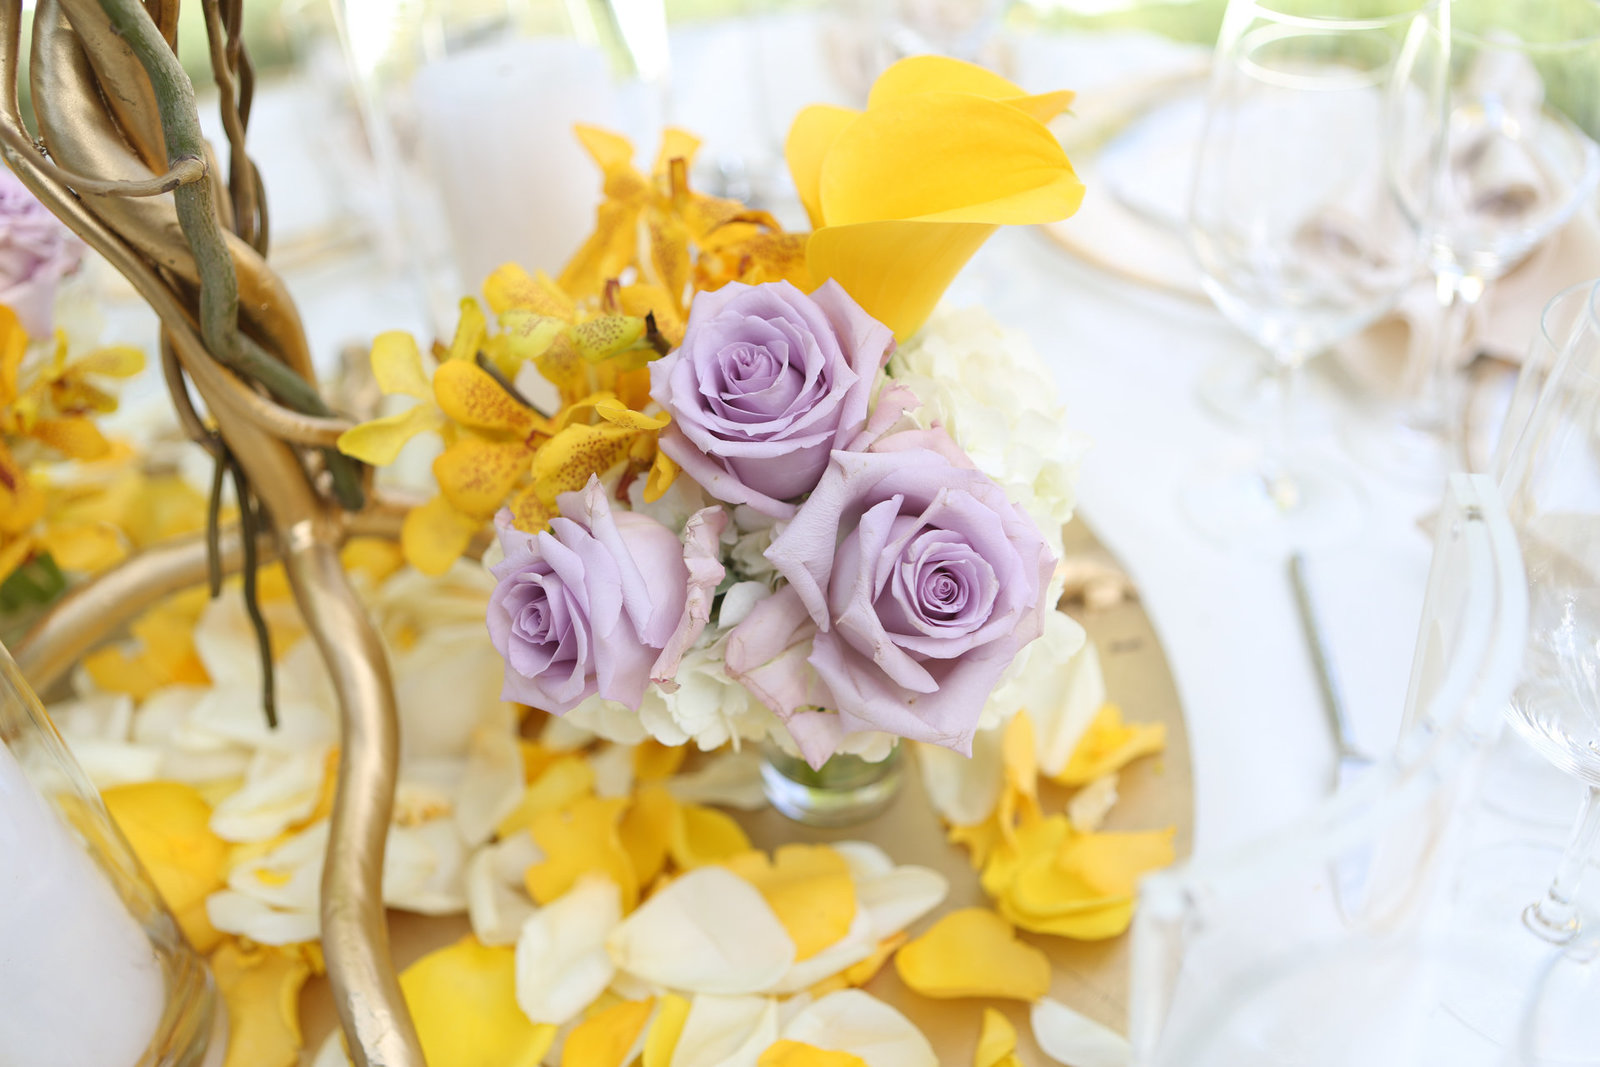 Stunning yellow and purple flowers decorate a table at a local wedding